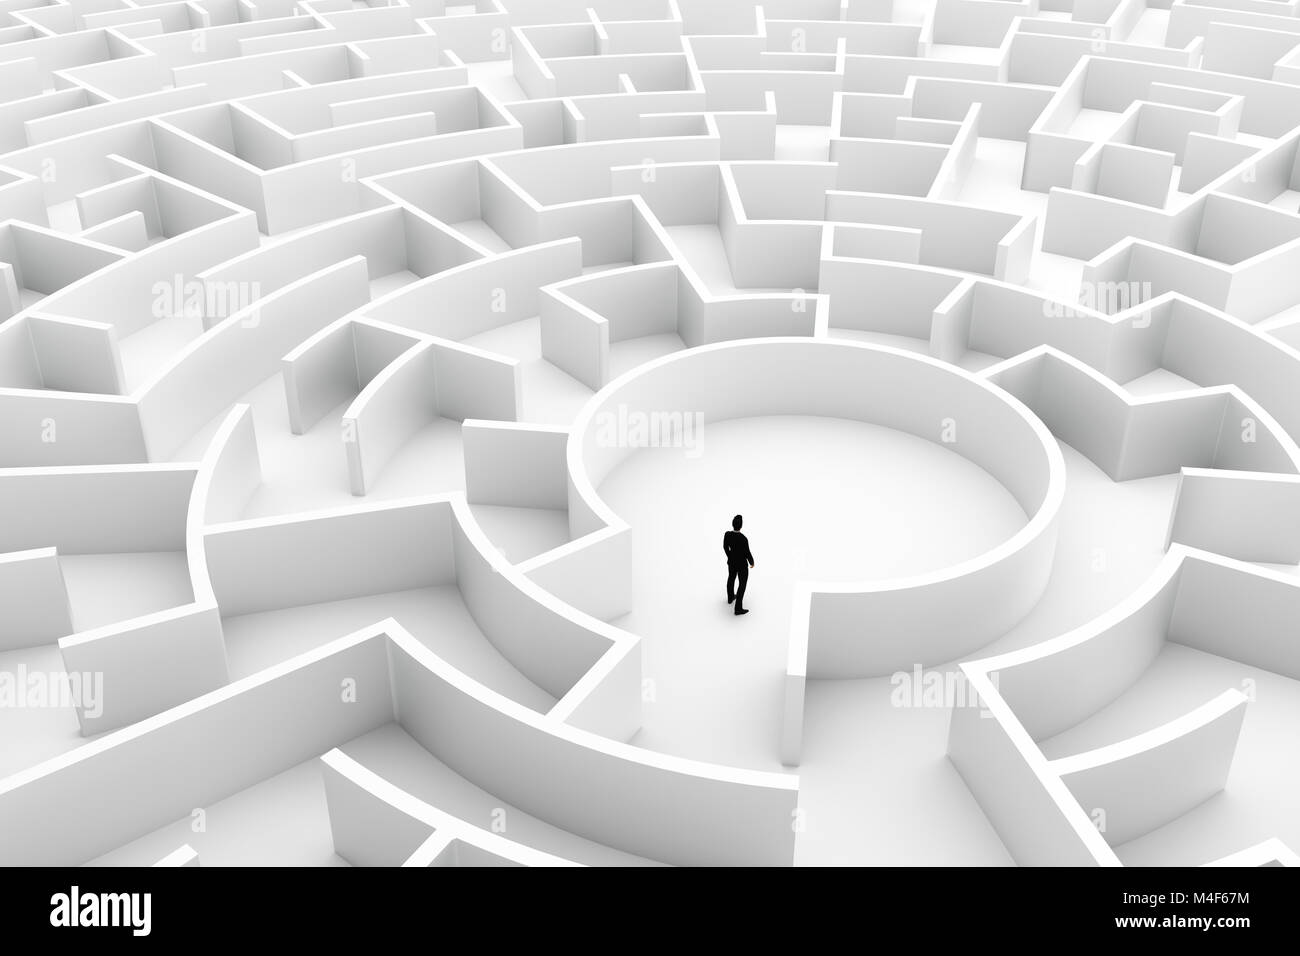 Businessman in the middle of the maze. Challenge concepts - Stock Image